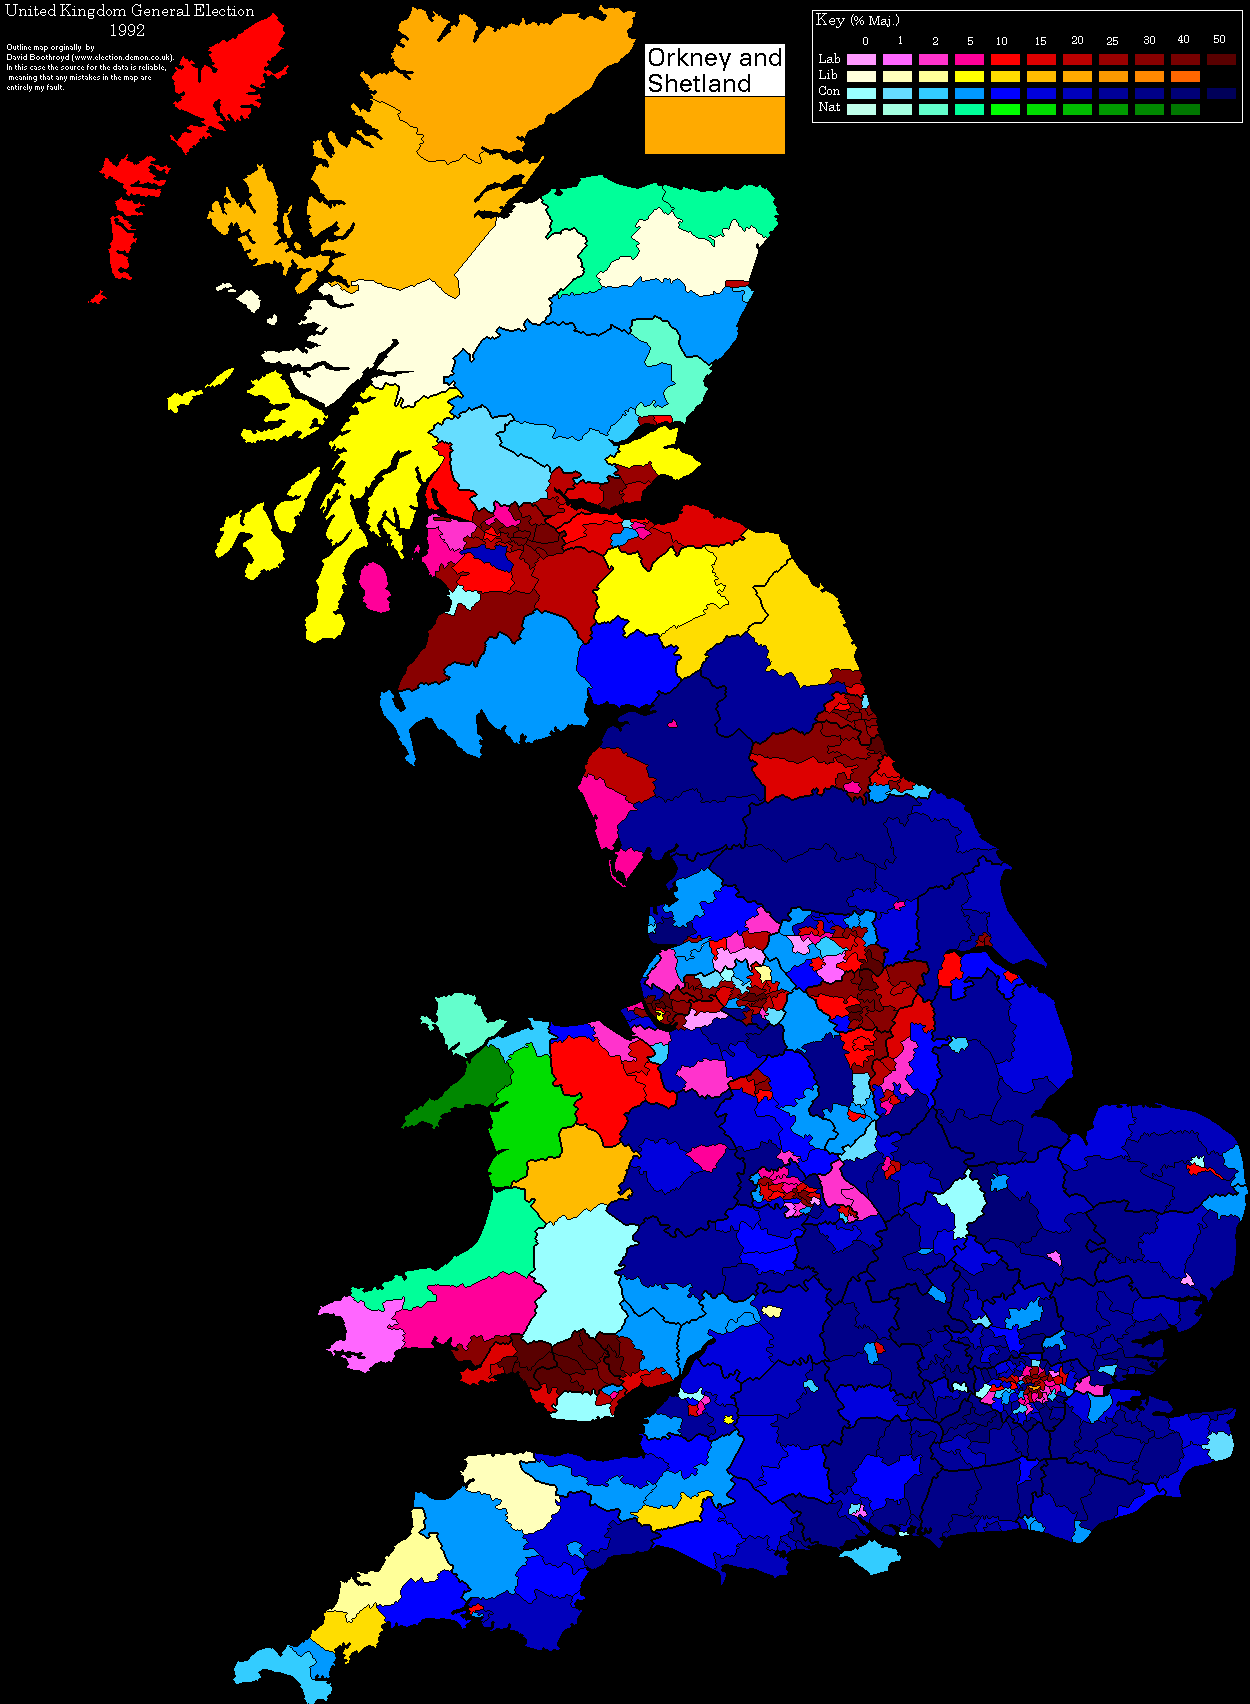 uk election maps 1992 election by party and depth of vote source httpuselectionatlasorgforumindexphptopic3376725